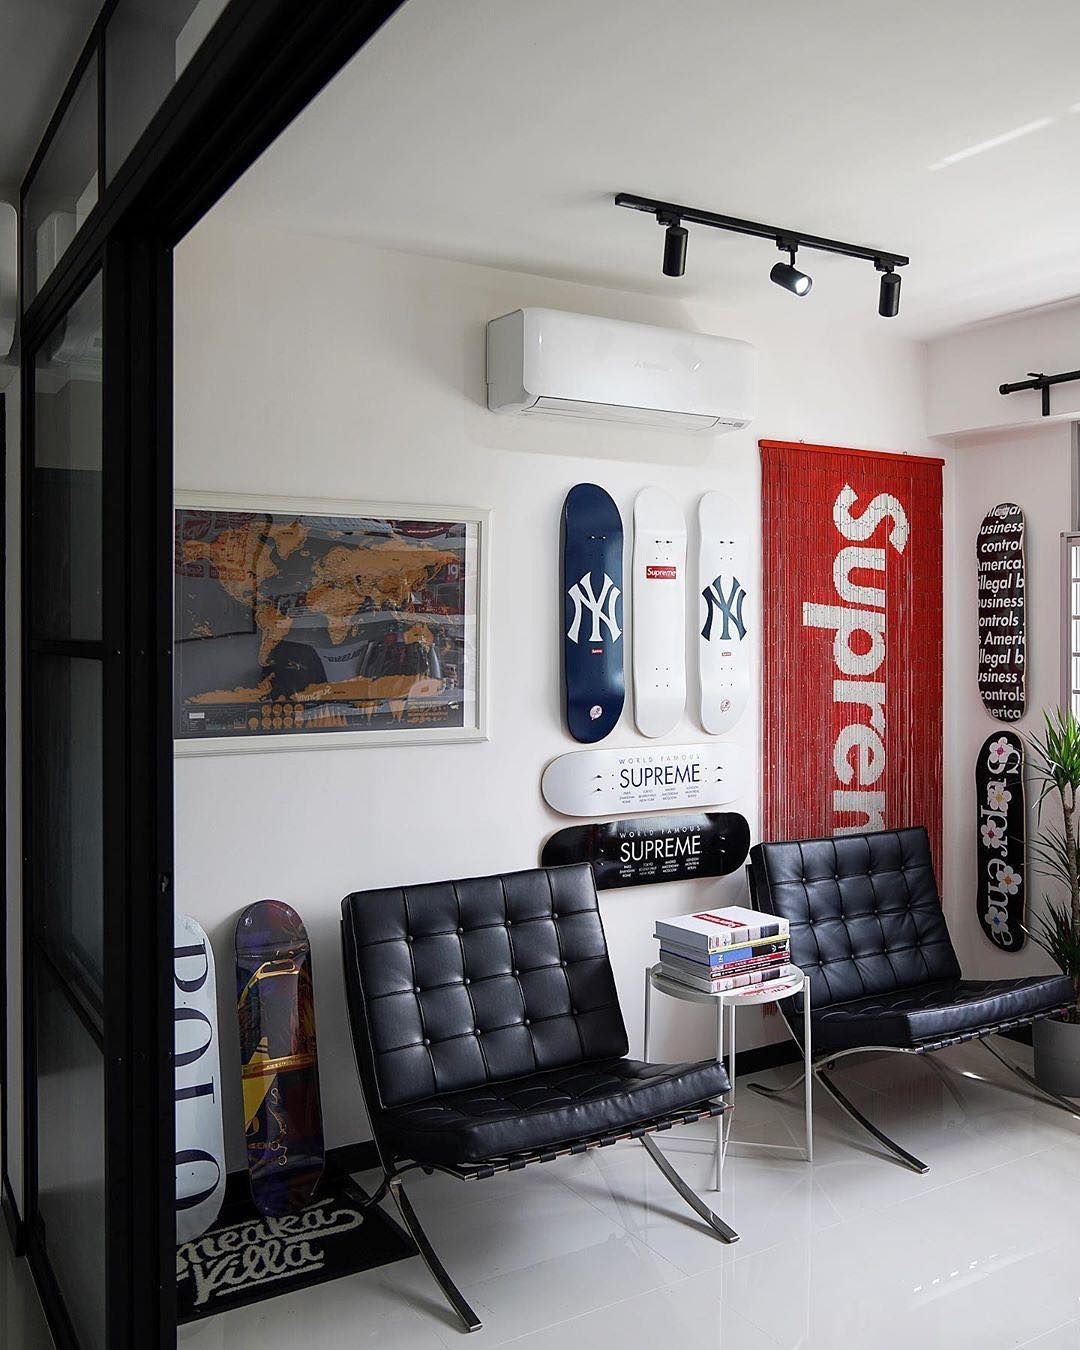 Supreme On Instagram Drop An Emoji Which Best Describes This Room Photo 65upreme In 2020 Hypebeast Room Mens Room Decor Home Room Design